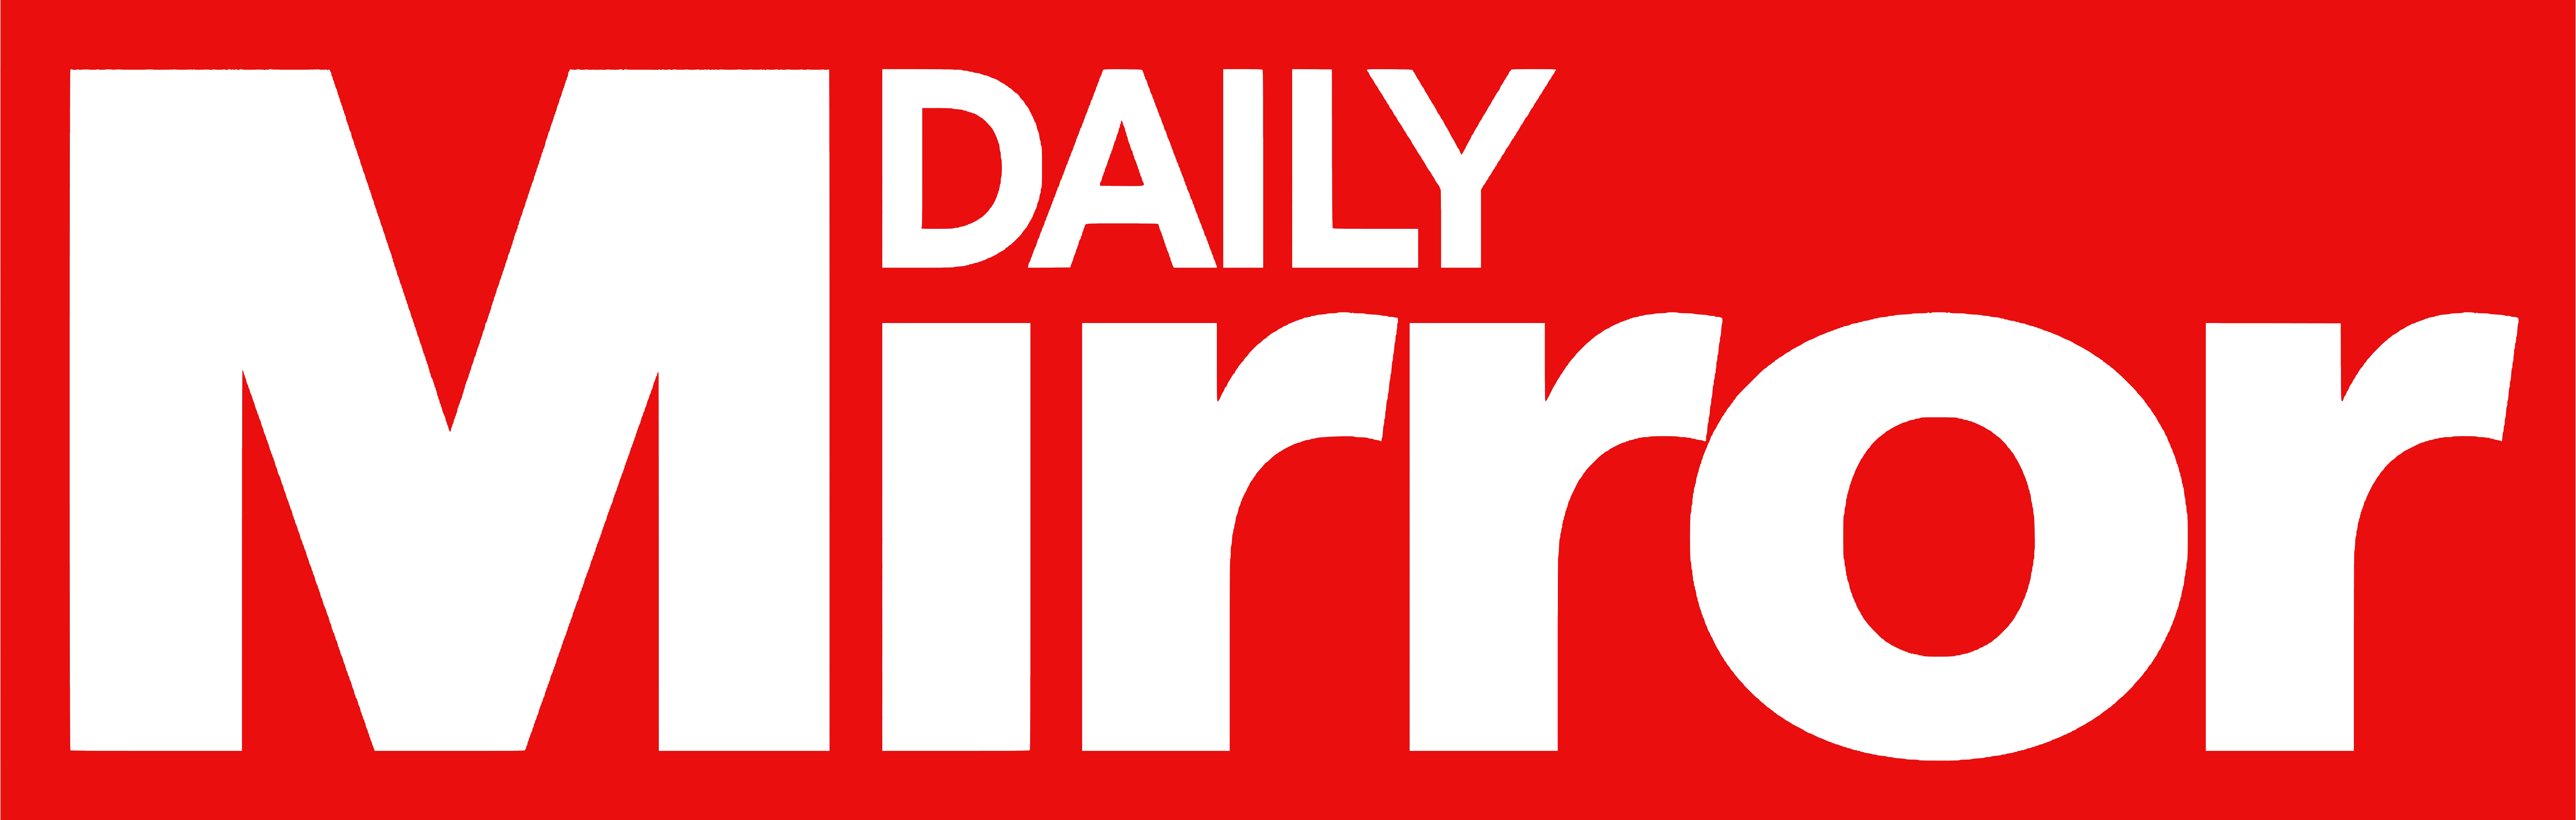 1755 daily mirror